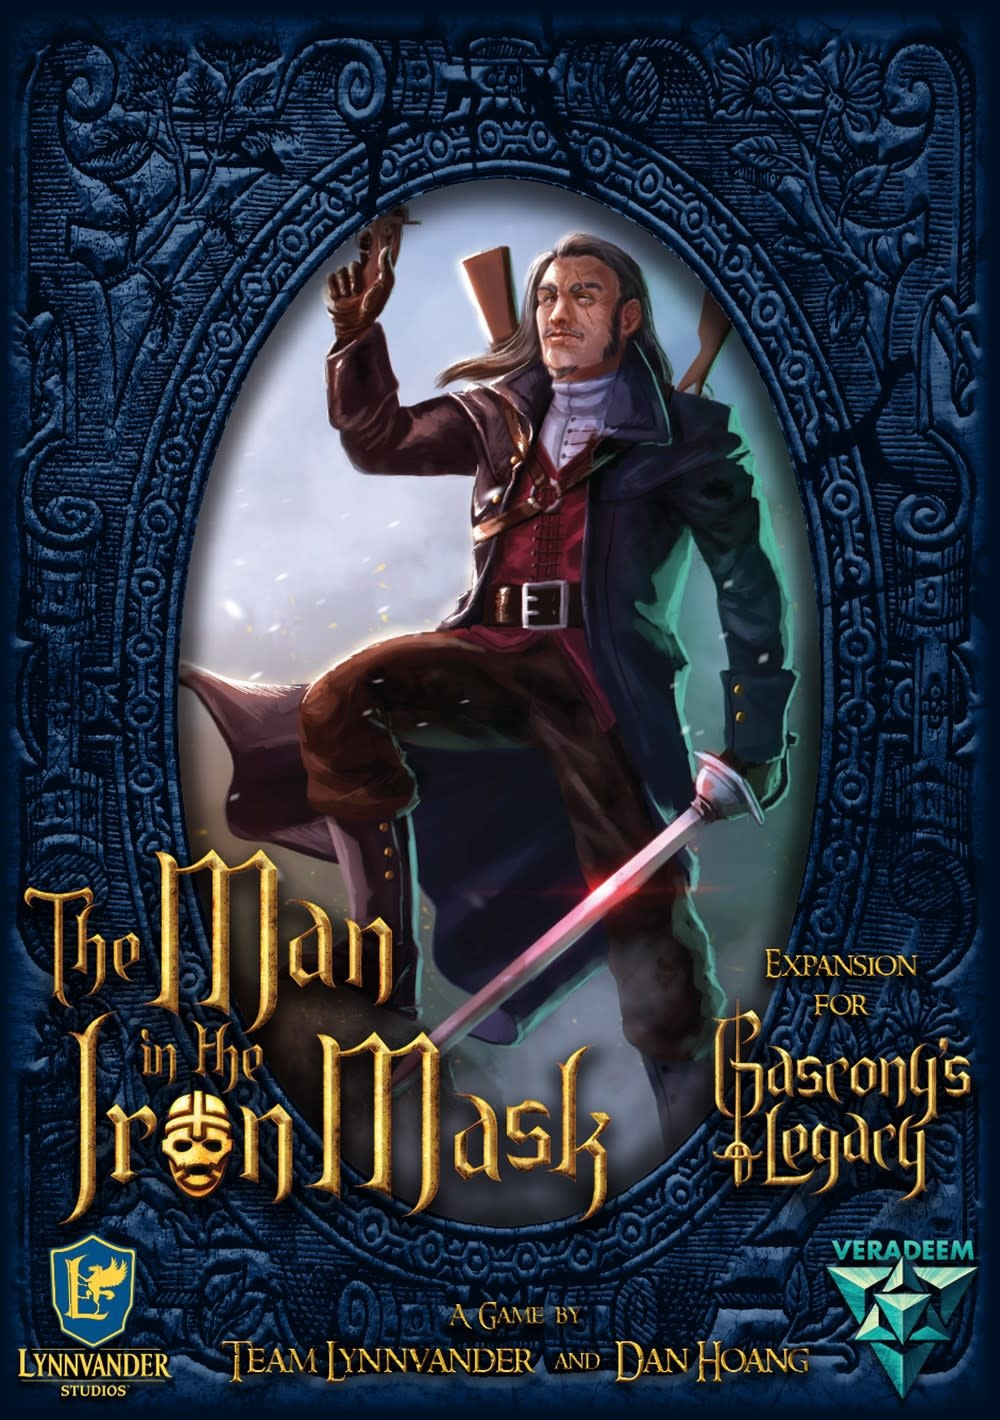 Gascony's Legacy: The Man in the Iron Mask